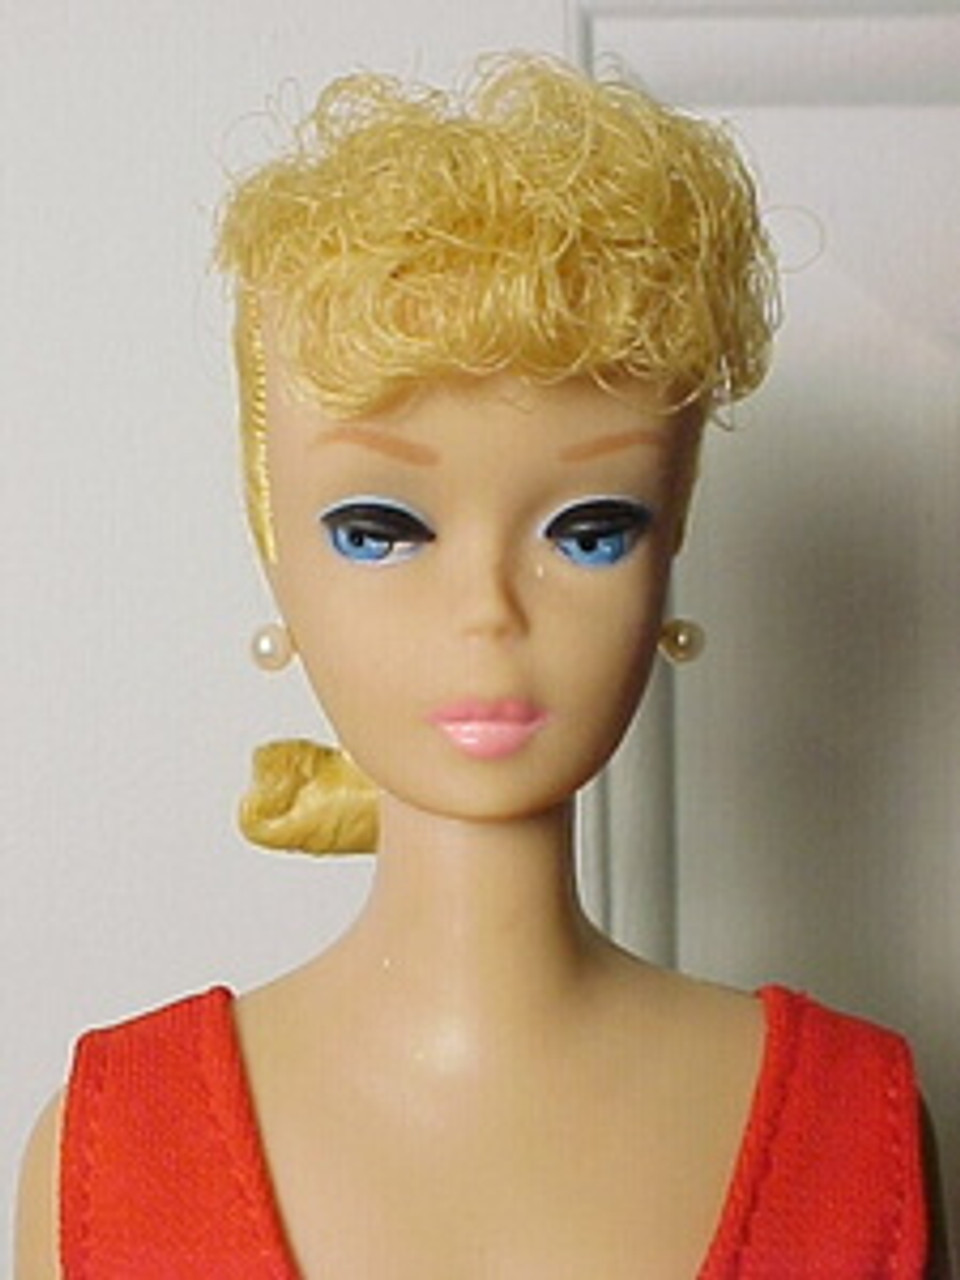 Lemon Blond 14 KatSilk Saran Doll Hair